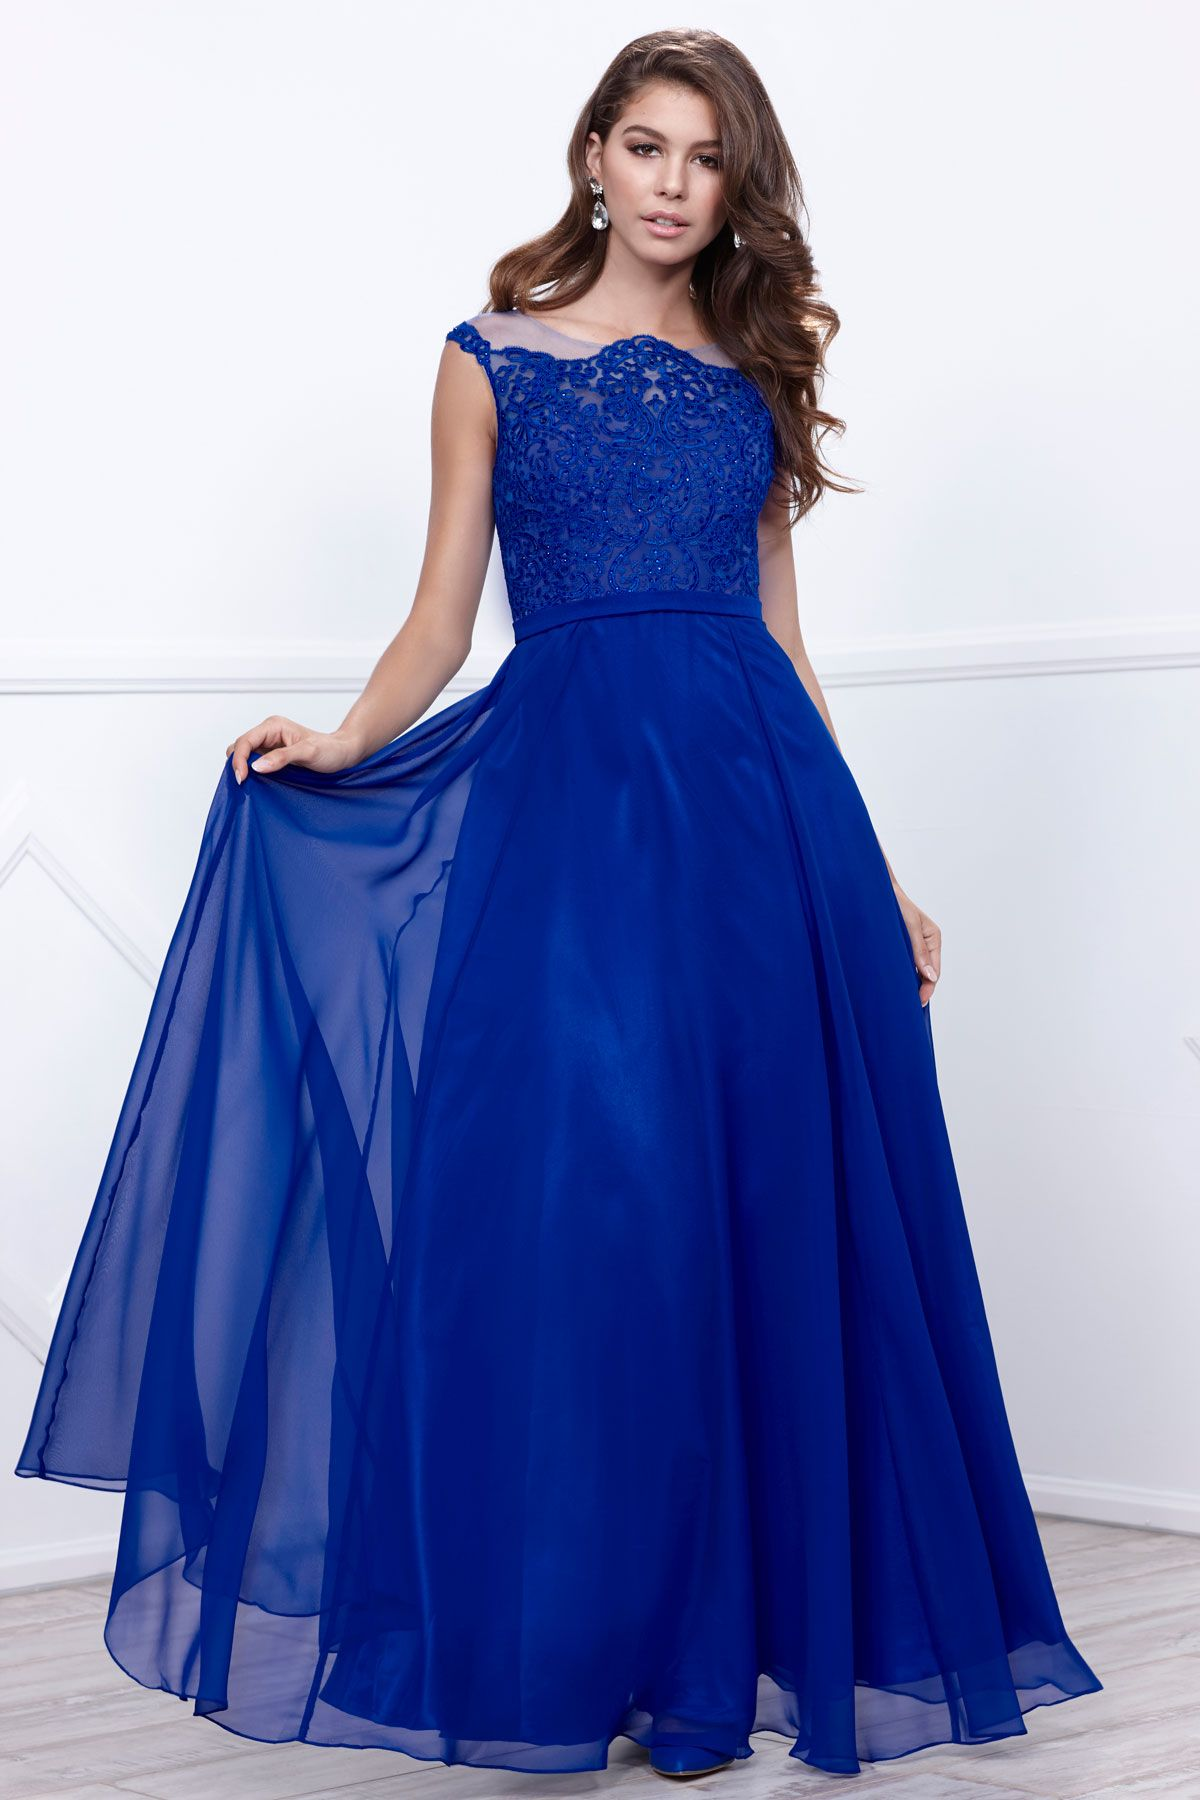 Long evening dress nx full length aline formal evening gown